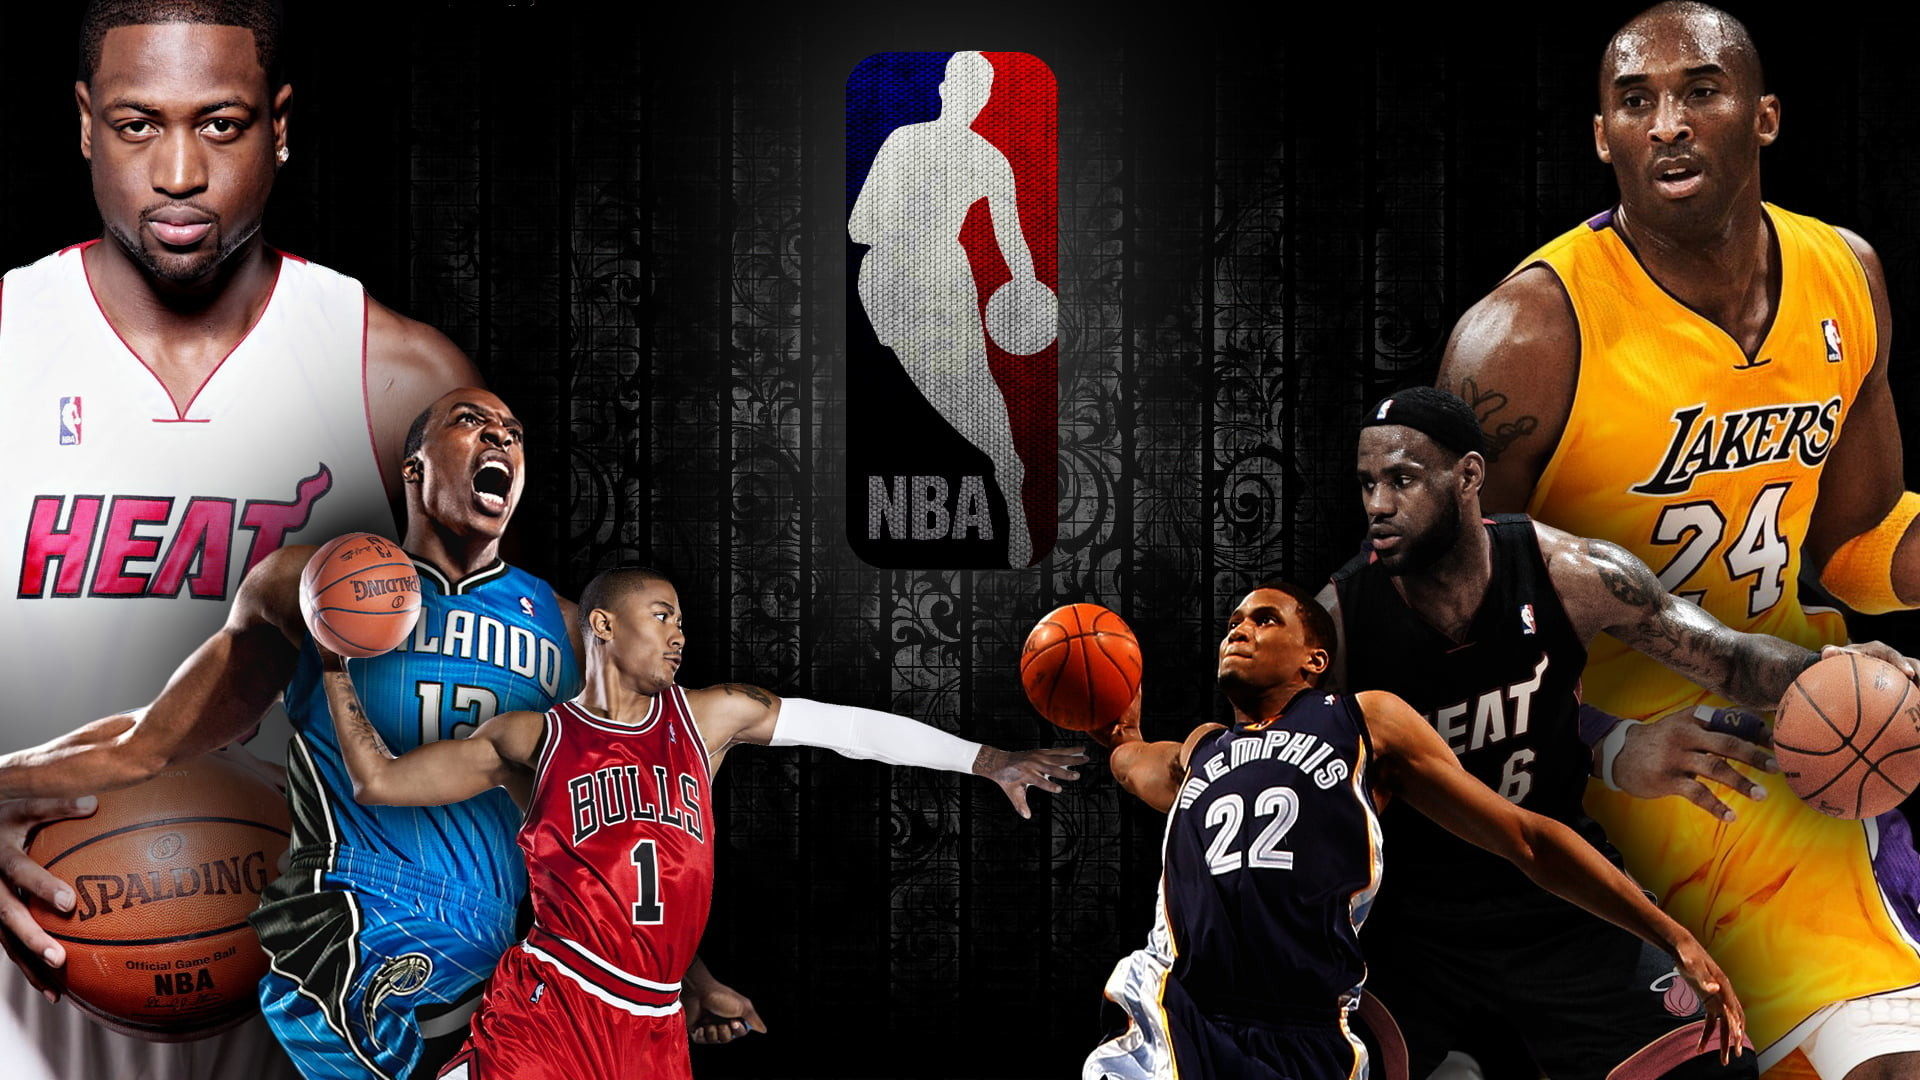 1920x1080 1920x1200 Magic Johnson Legend Wallpaper by IshaanMishra Magic Johnson  Legend Wallpaper by IshaanMishra